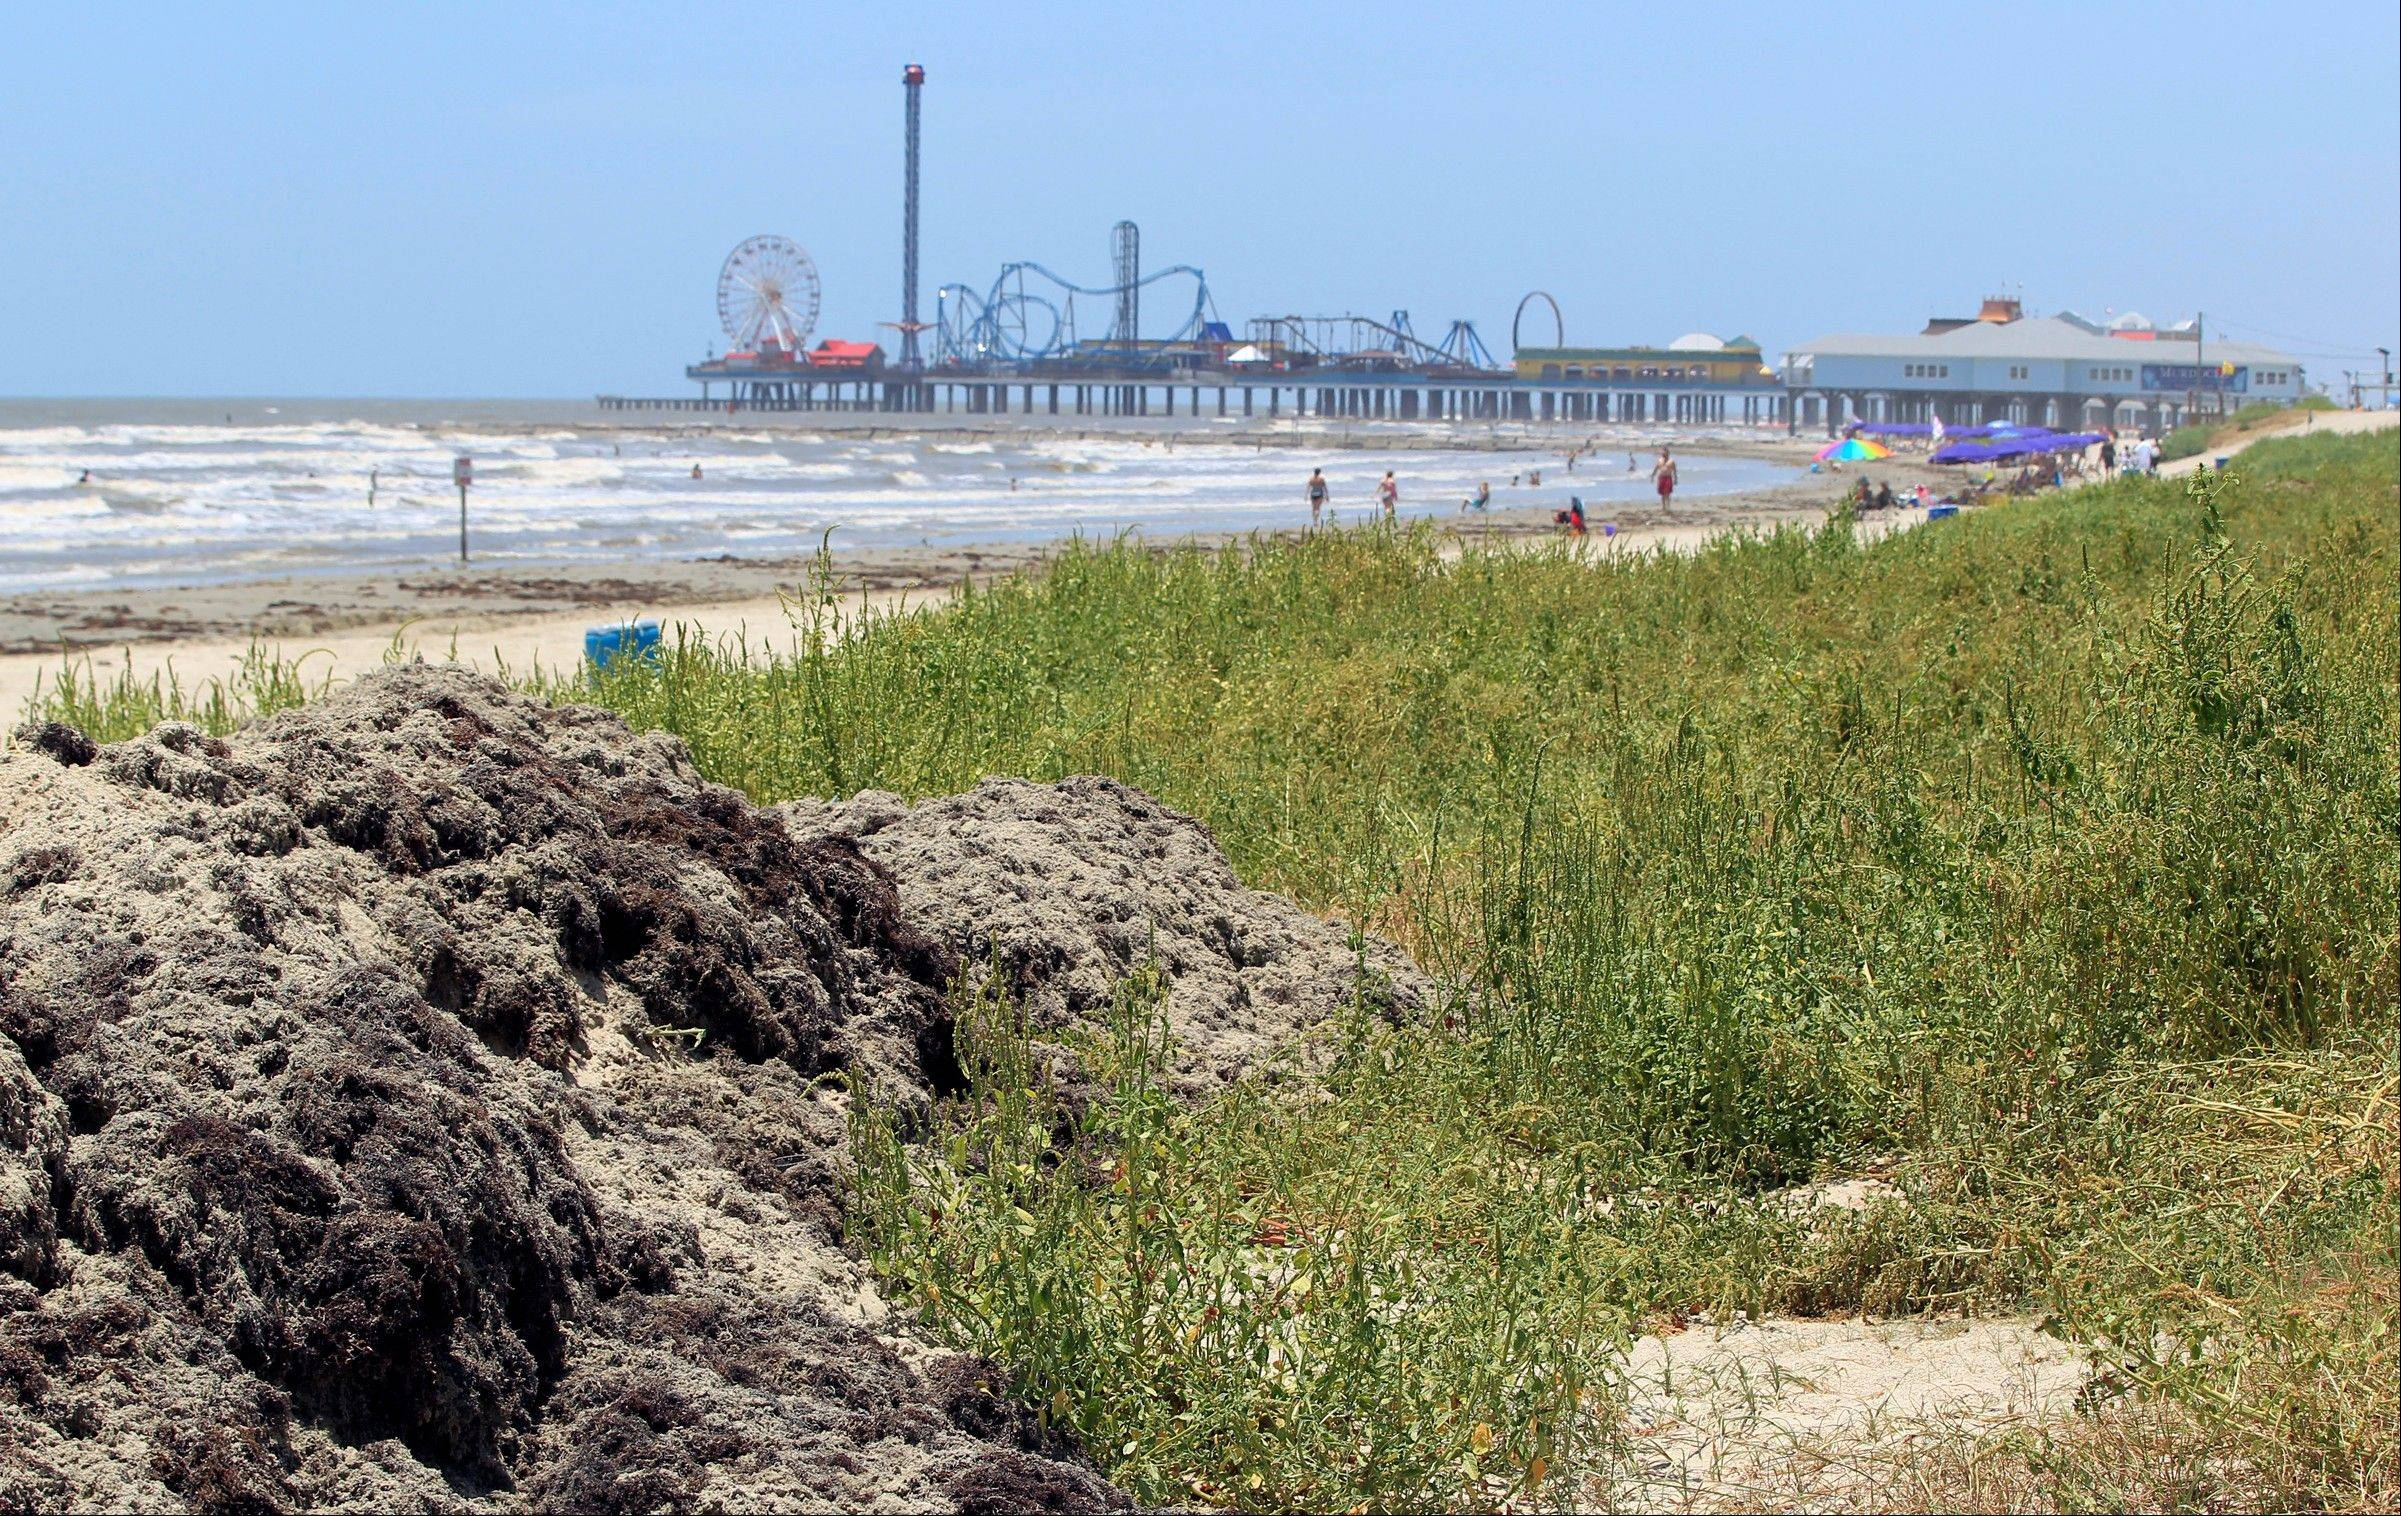 Seaweed scraped from the beach near 17th Street in Galveston, Texas, is piled into dunes where vegetation is already growing over decomposing seaweed. The Park Board of Trustees voted unanimously to support projects that will create ìseaweed-enhanced sand dunes on the island.